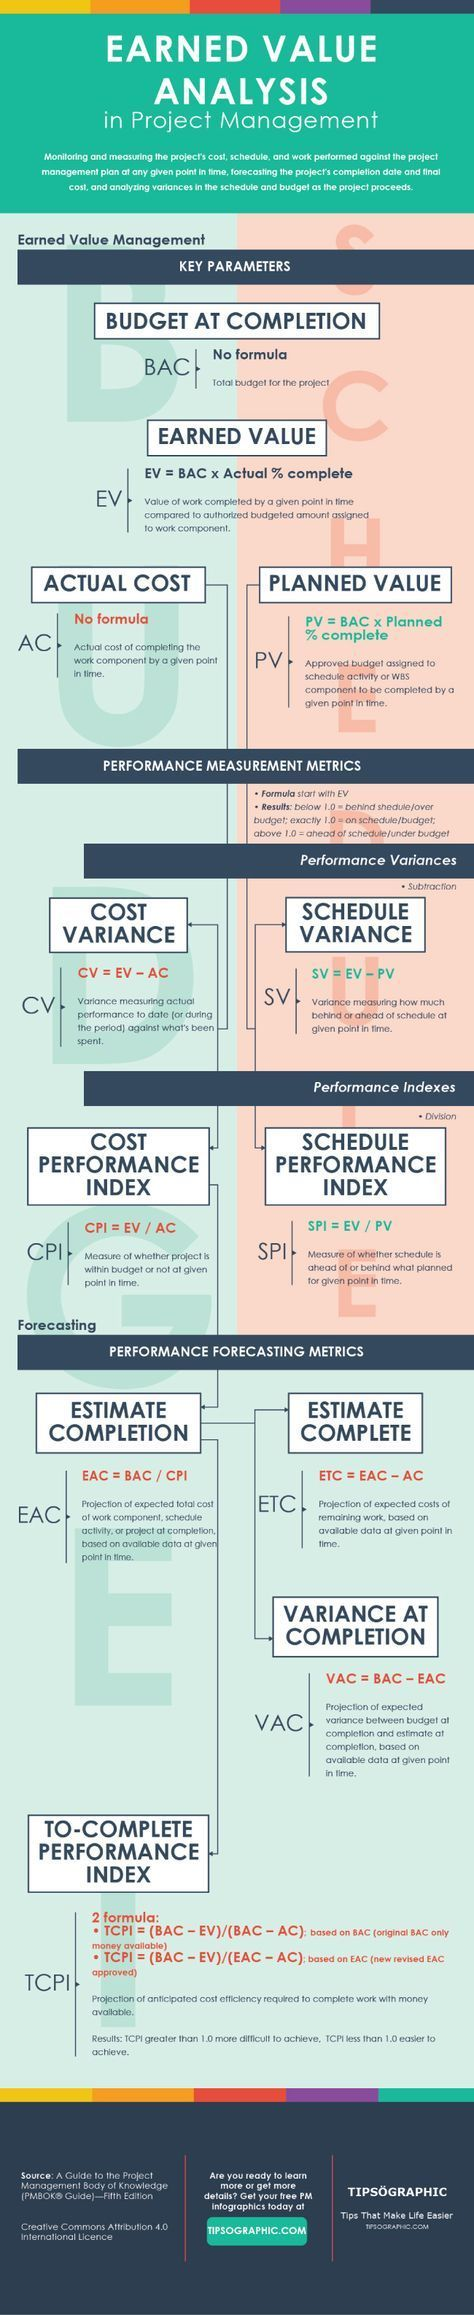 Earned Value Analysis in Project Management — an Easy Cheat Sheet